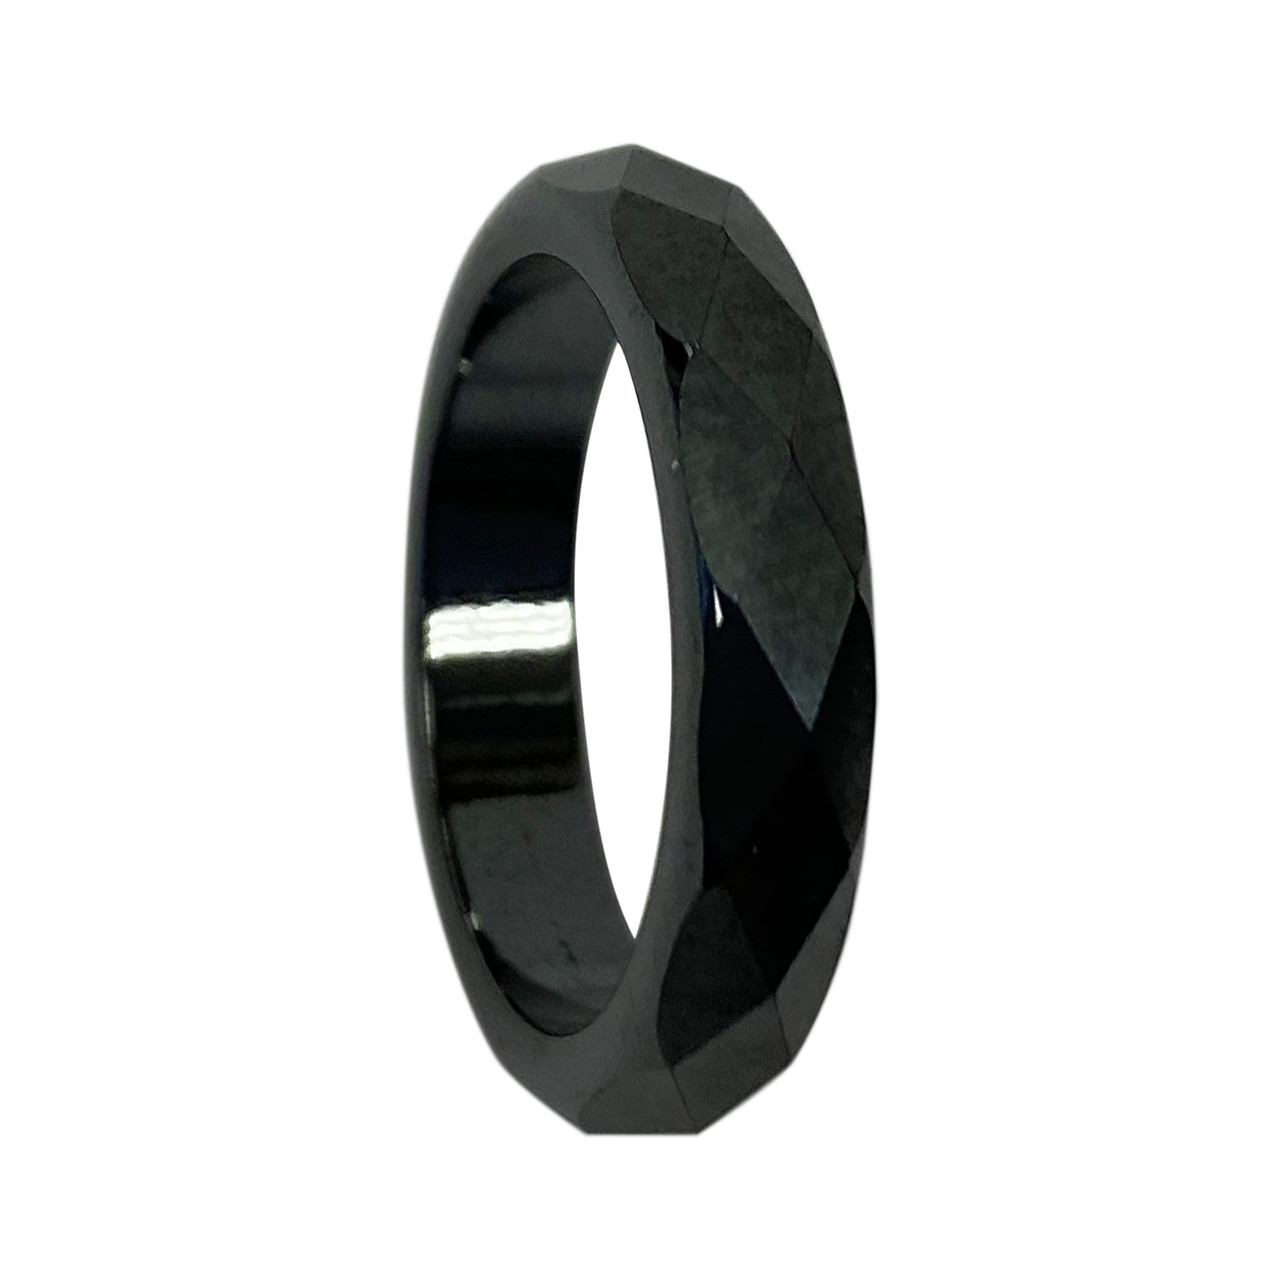 Simulated Hematite Magnetic Multifaceted 4mm Band